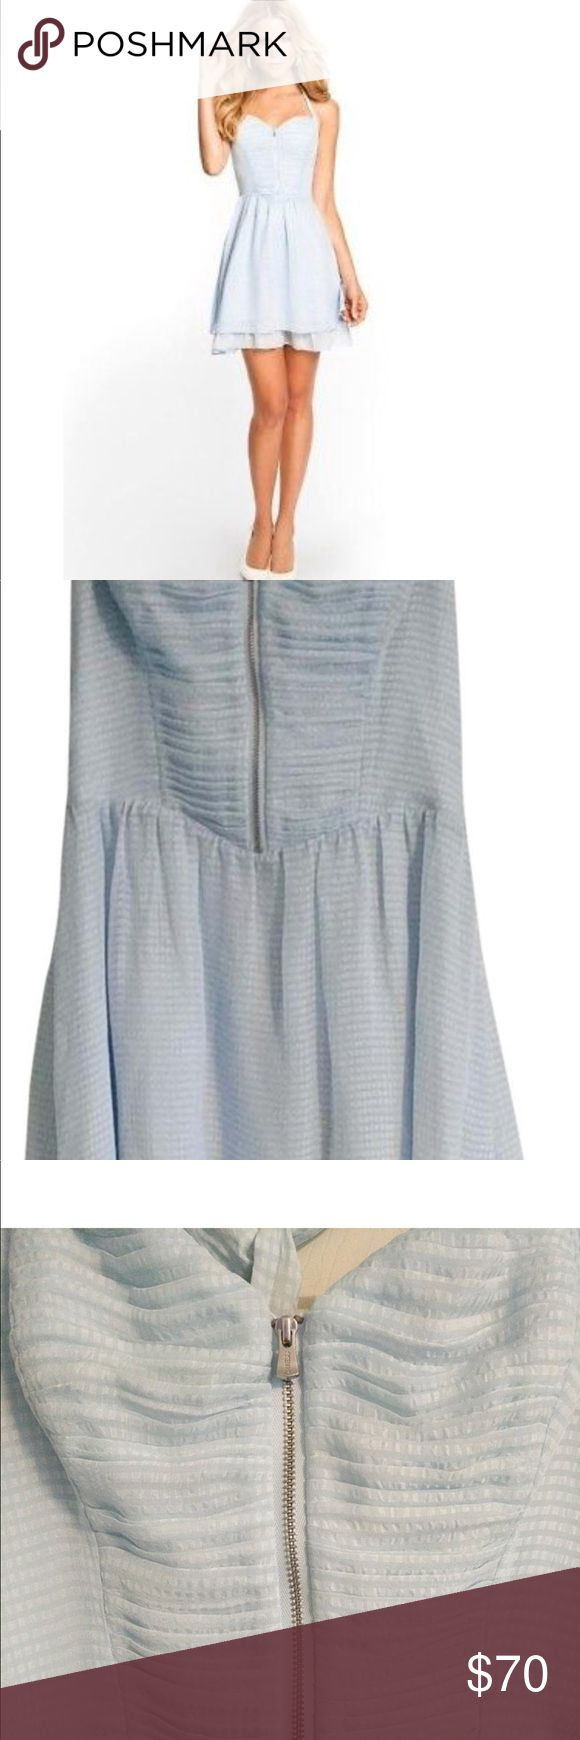 Guess mirage Ingrid dress Brand new with tags. Checked pastel blue pattern. Sweetheart neckline. Halter straps tie at neck. For and flare style. Exposed front zipper. Peek-a-boo ruffles hem. Size 4. Guess Dresses Mini